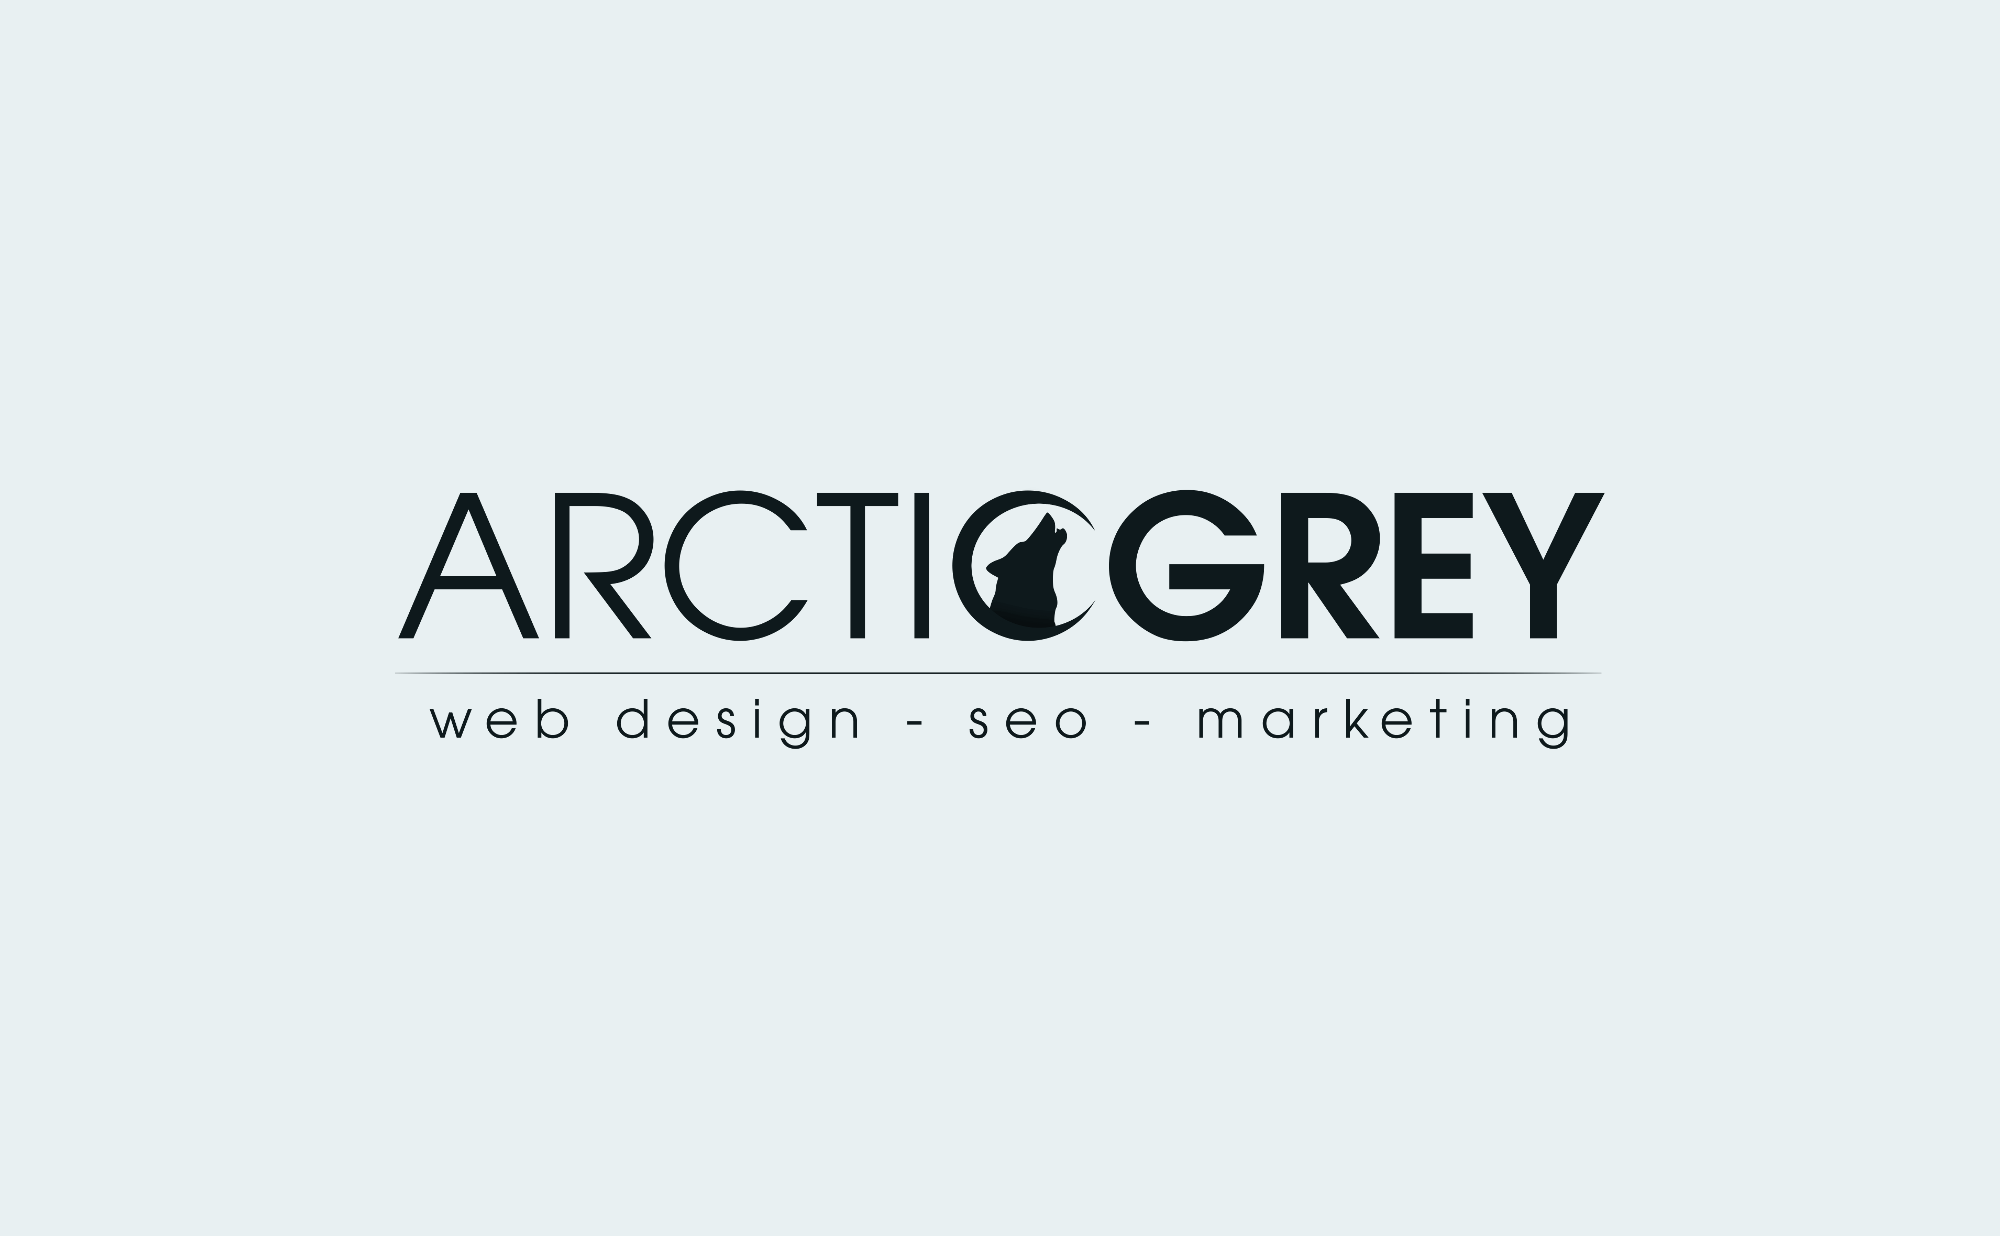 Best Shopify Development Company Logo: Arctic Grey Inc